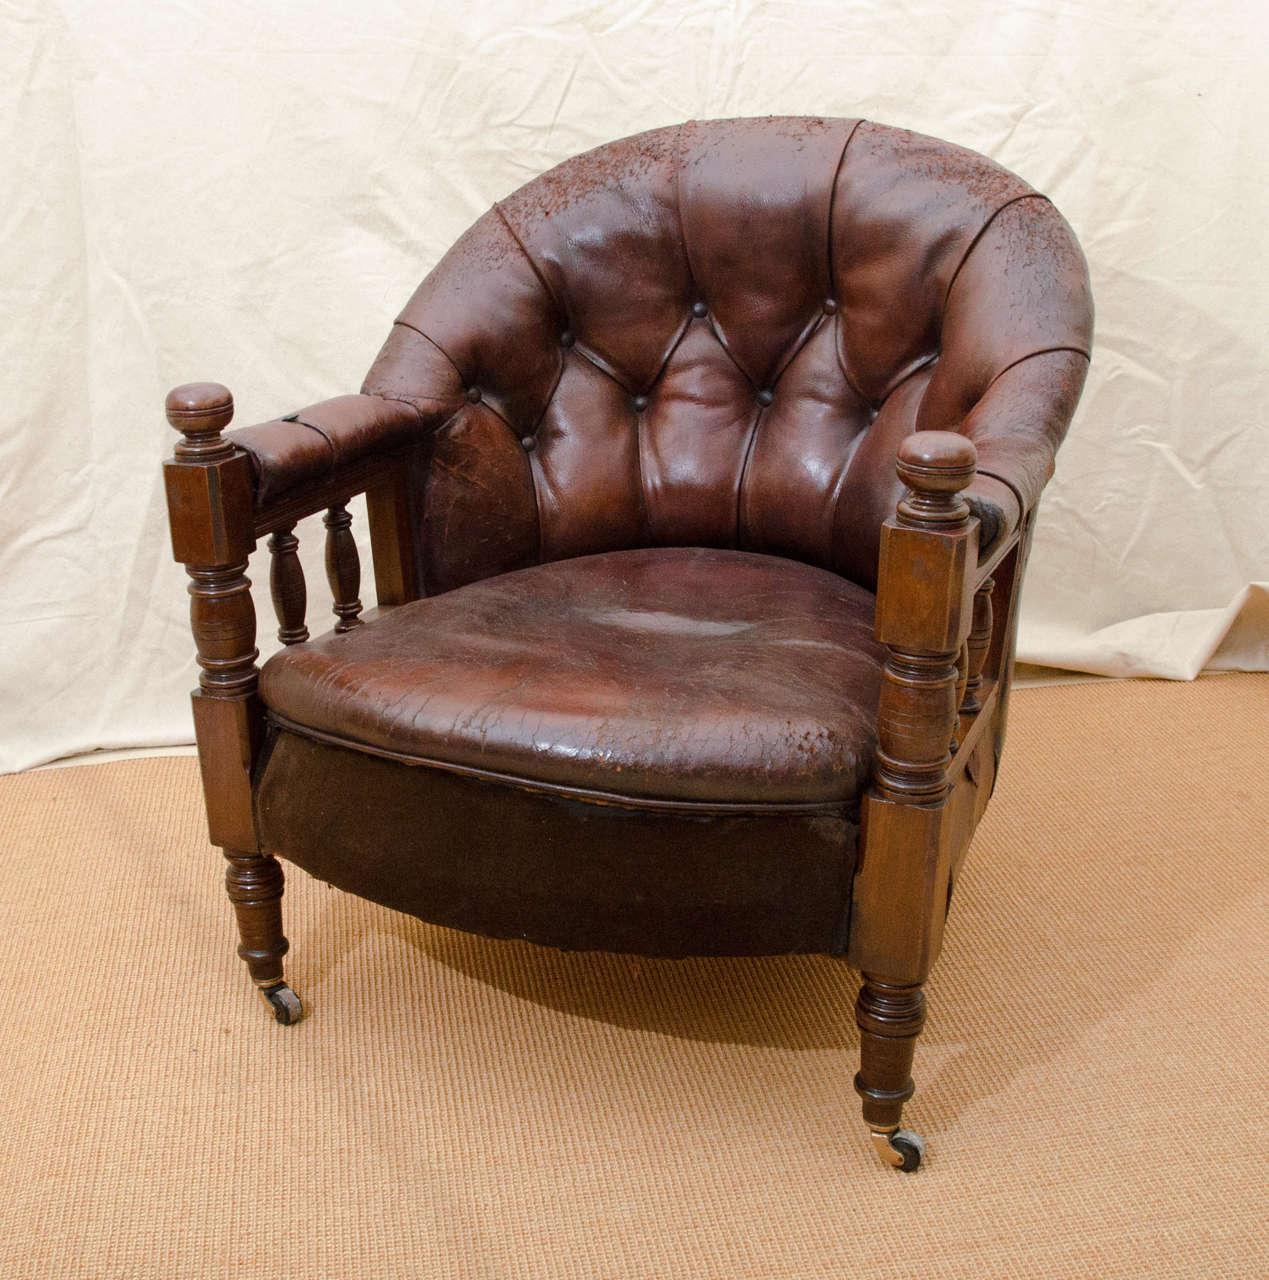 English Victorian Tufted Leather Barrel Back Spindle Support Open Armchair.  The Chair Is Mahogany Framed